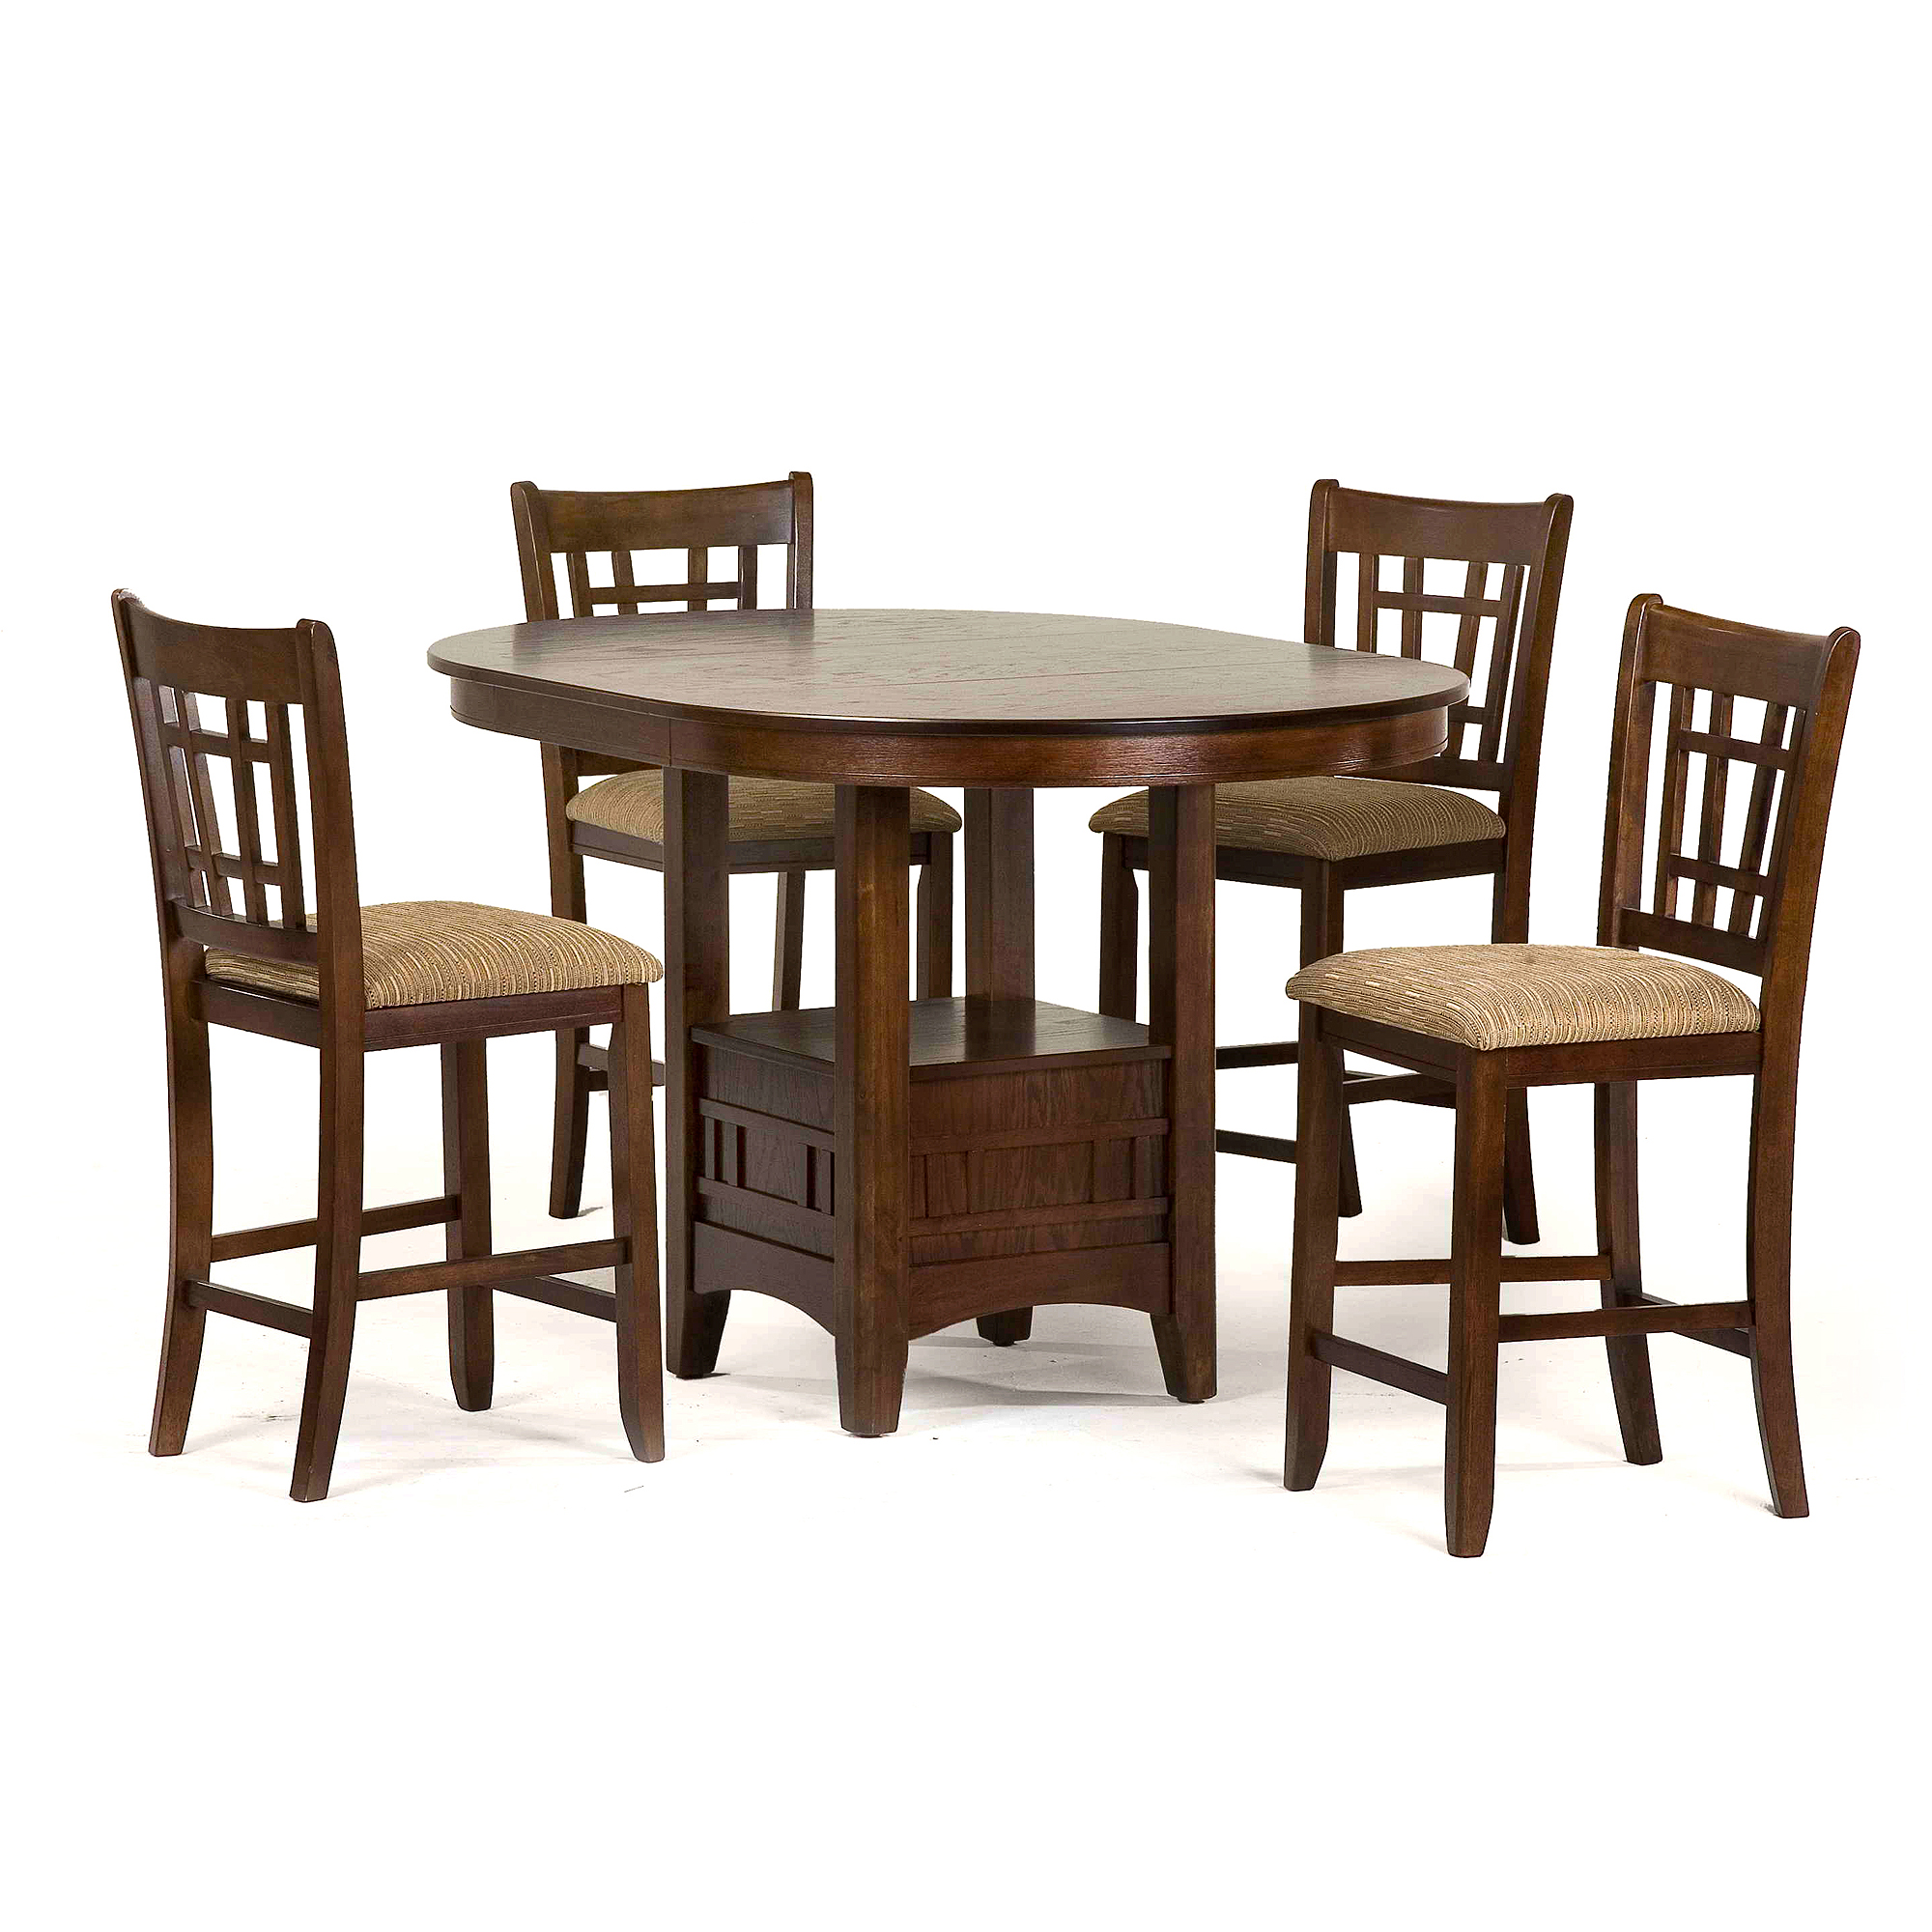 Primo International Melanie Counter Height Dining Chairs, Set of 2, Espresso